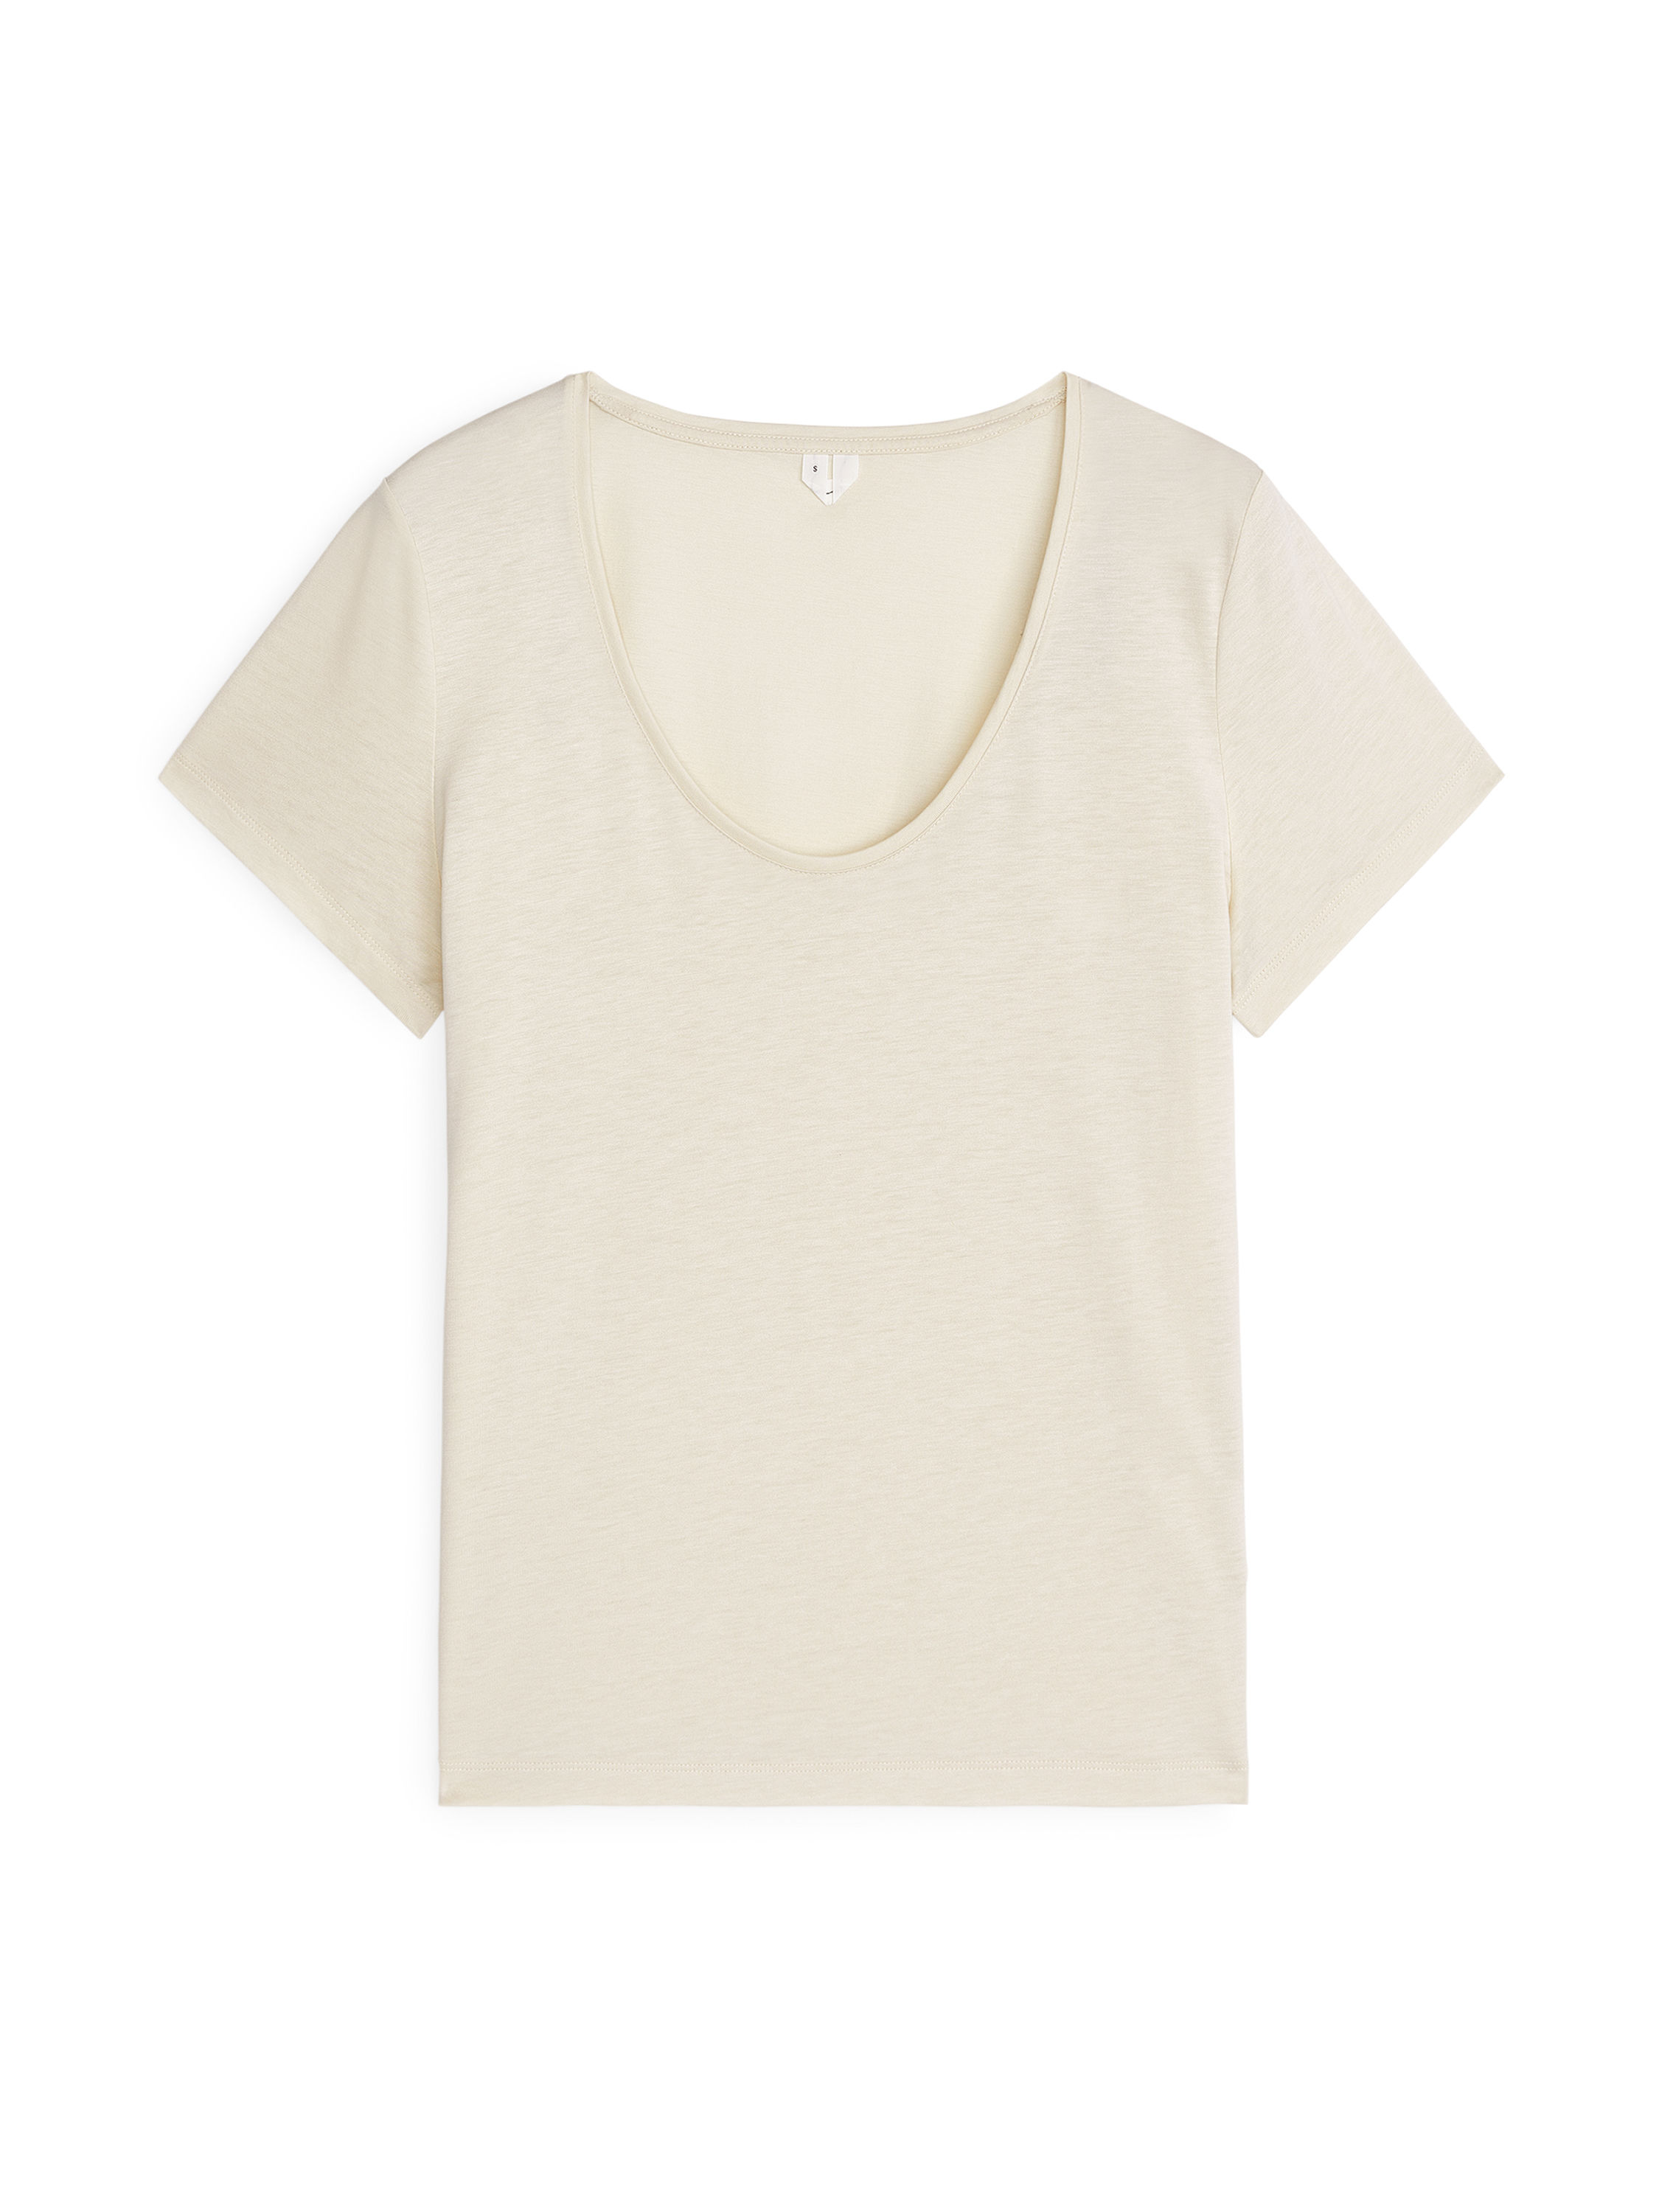 Fabric Swatch image of Arket lyocell blend t-shirt in beige